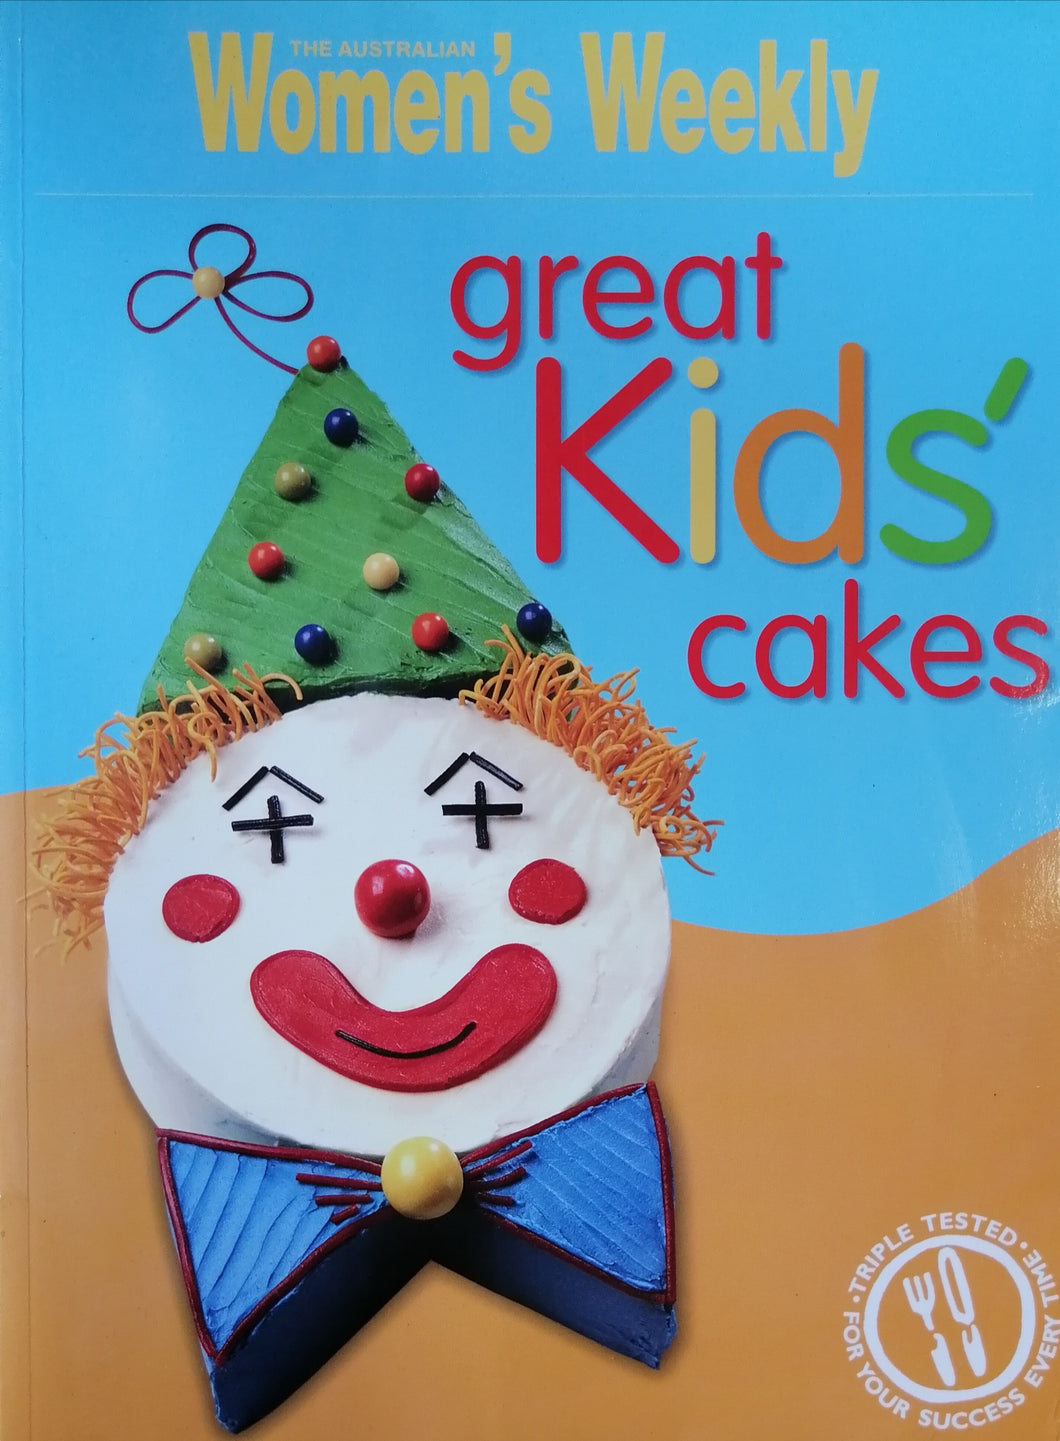 Great kids cakes